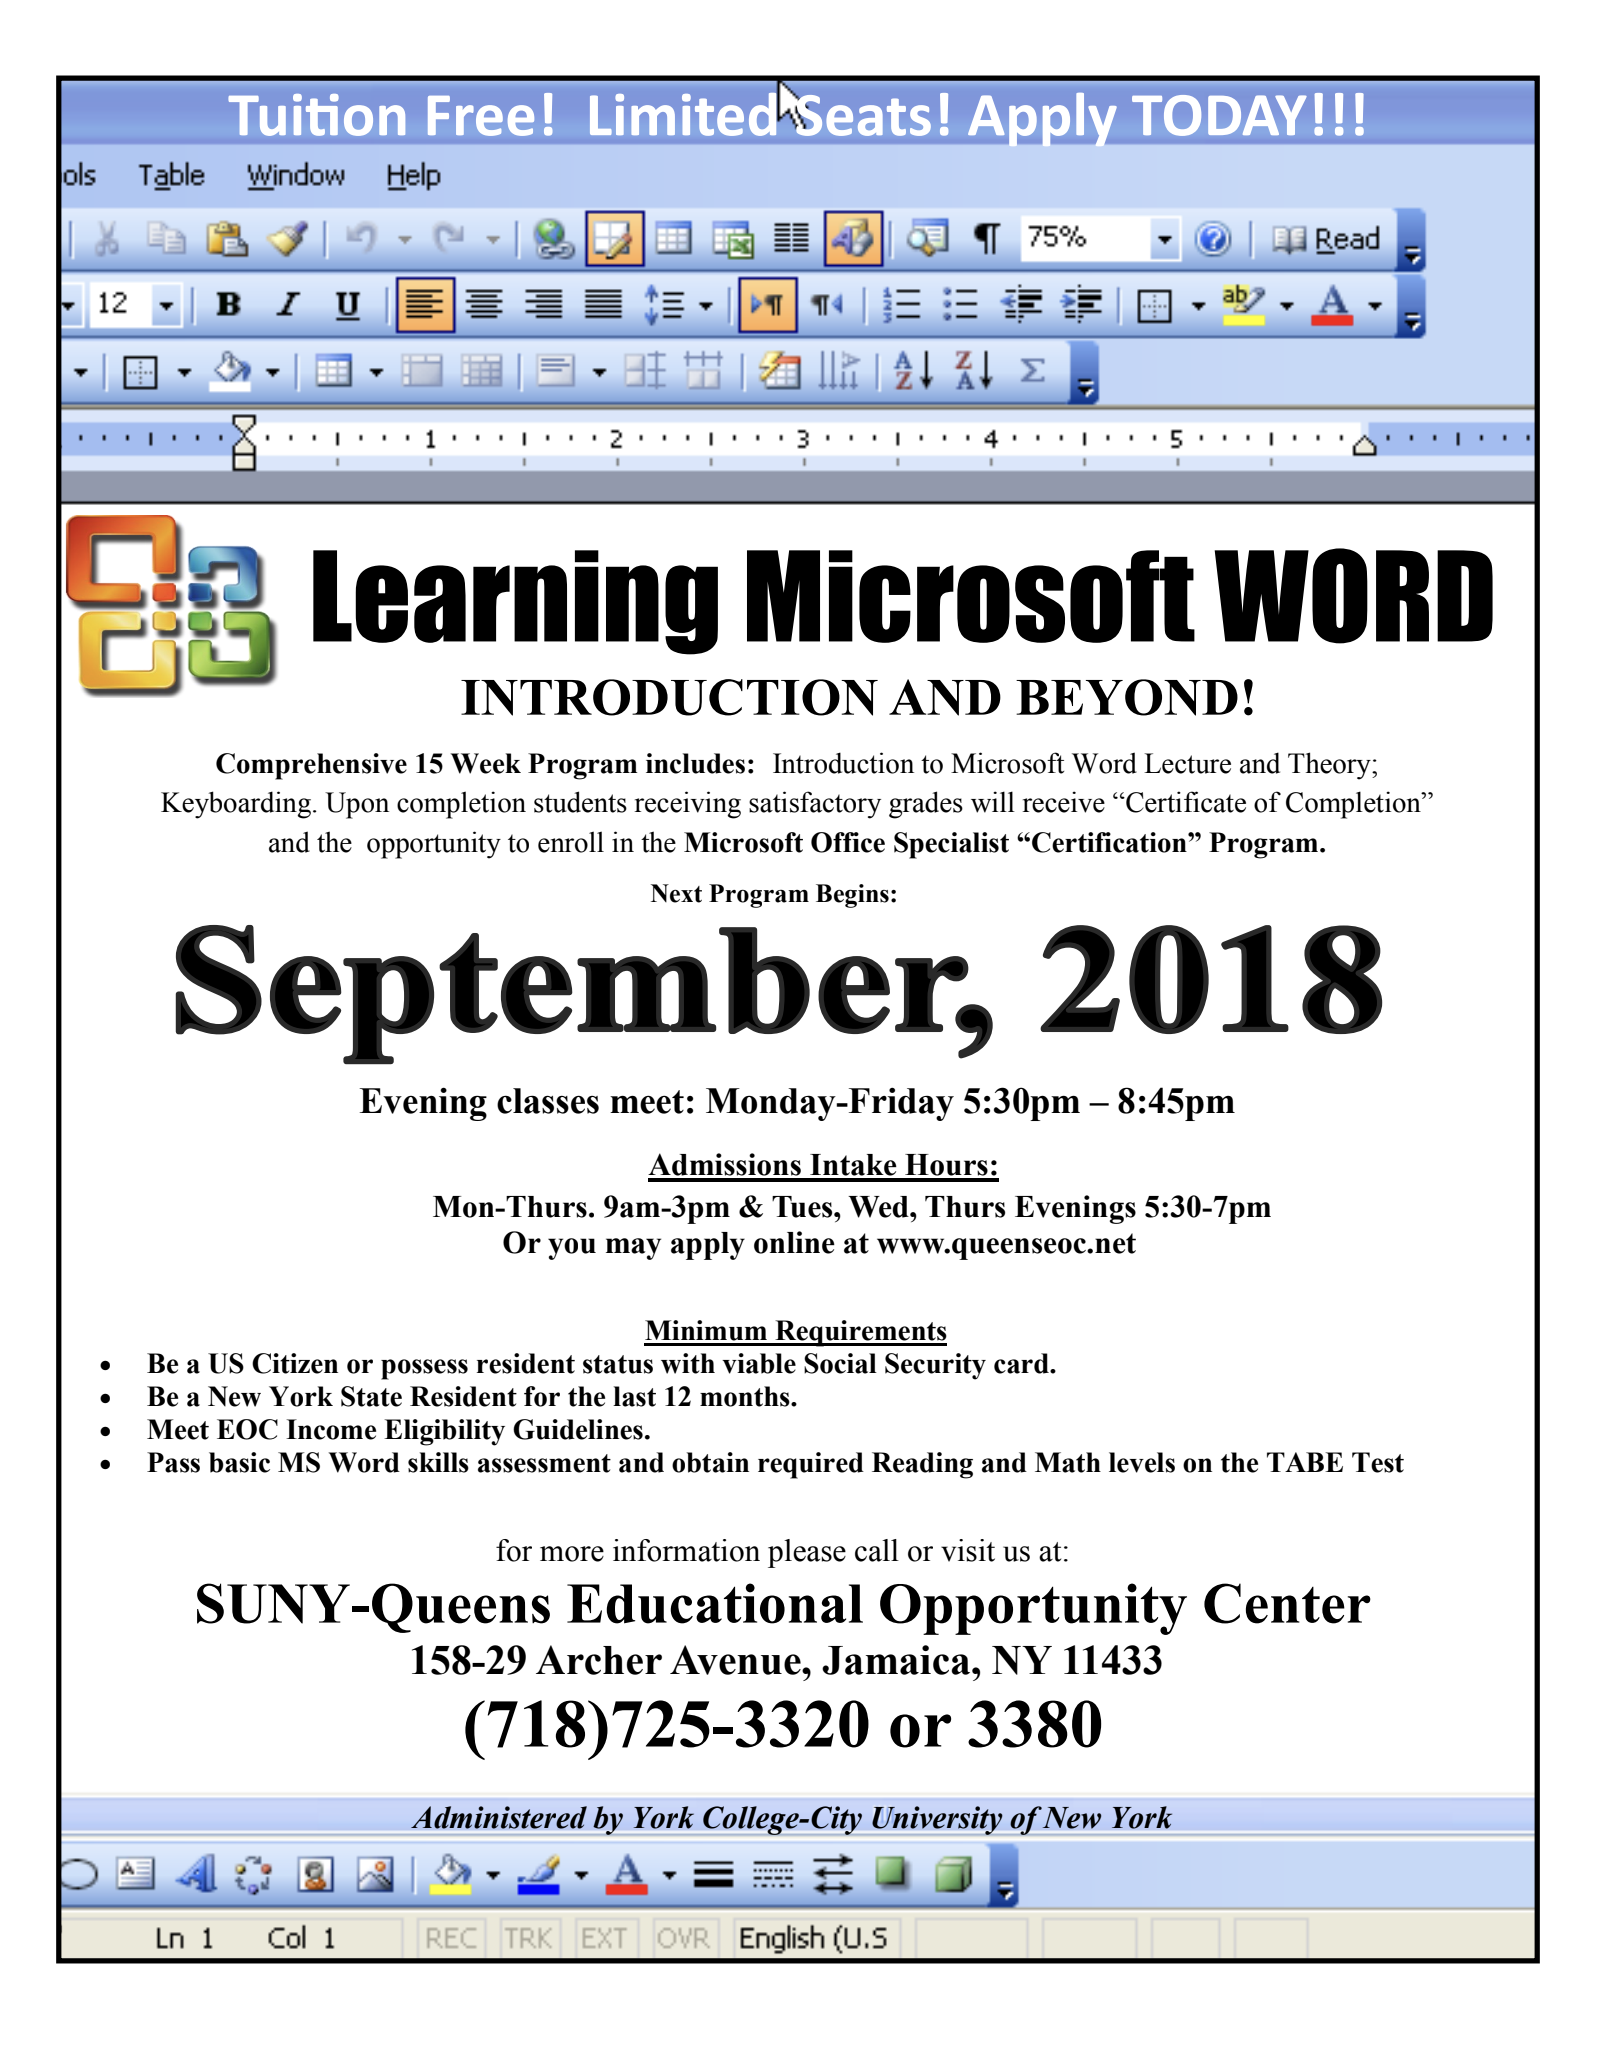 Learning Microsoft Word Starts September 12th Jamaica 311